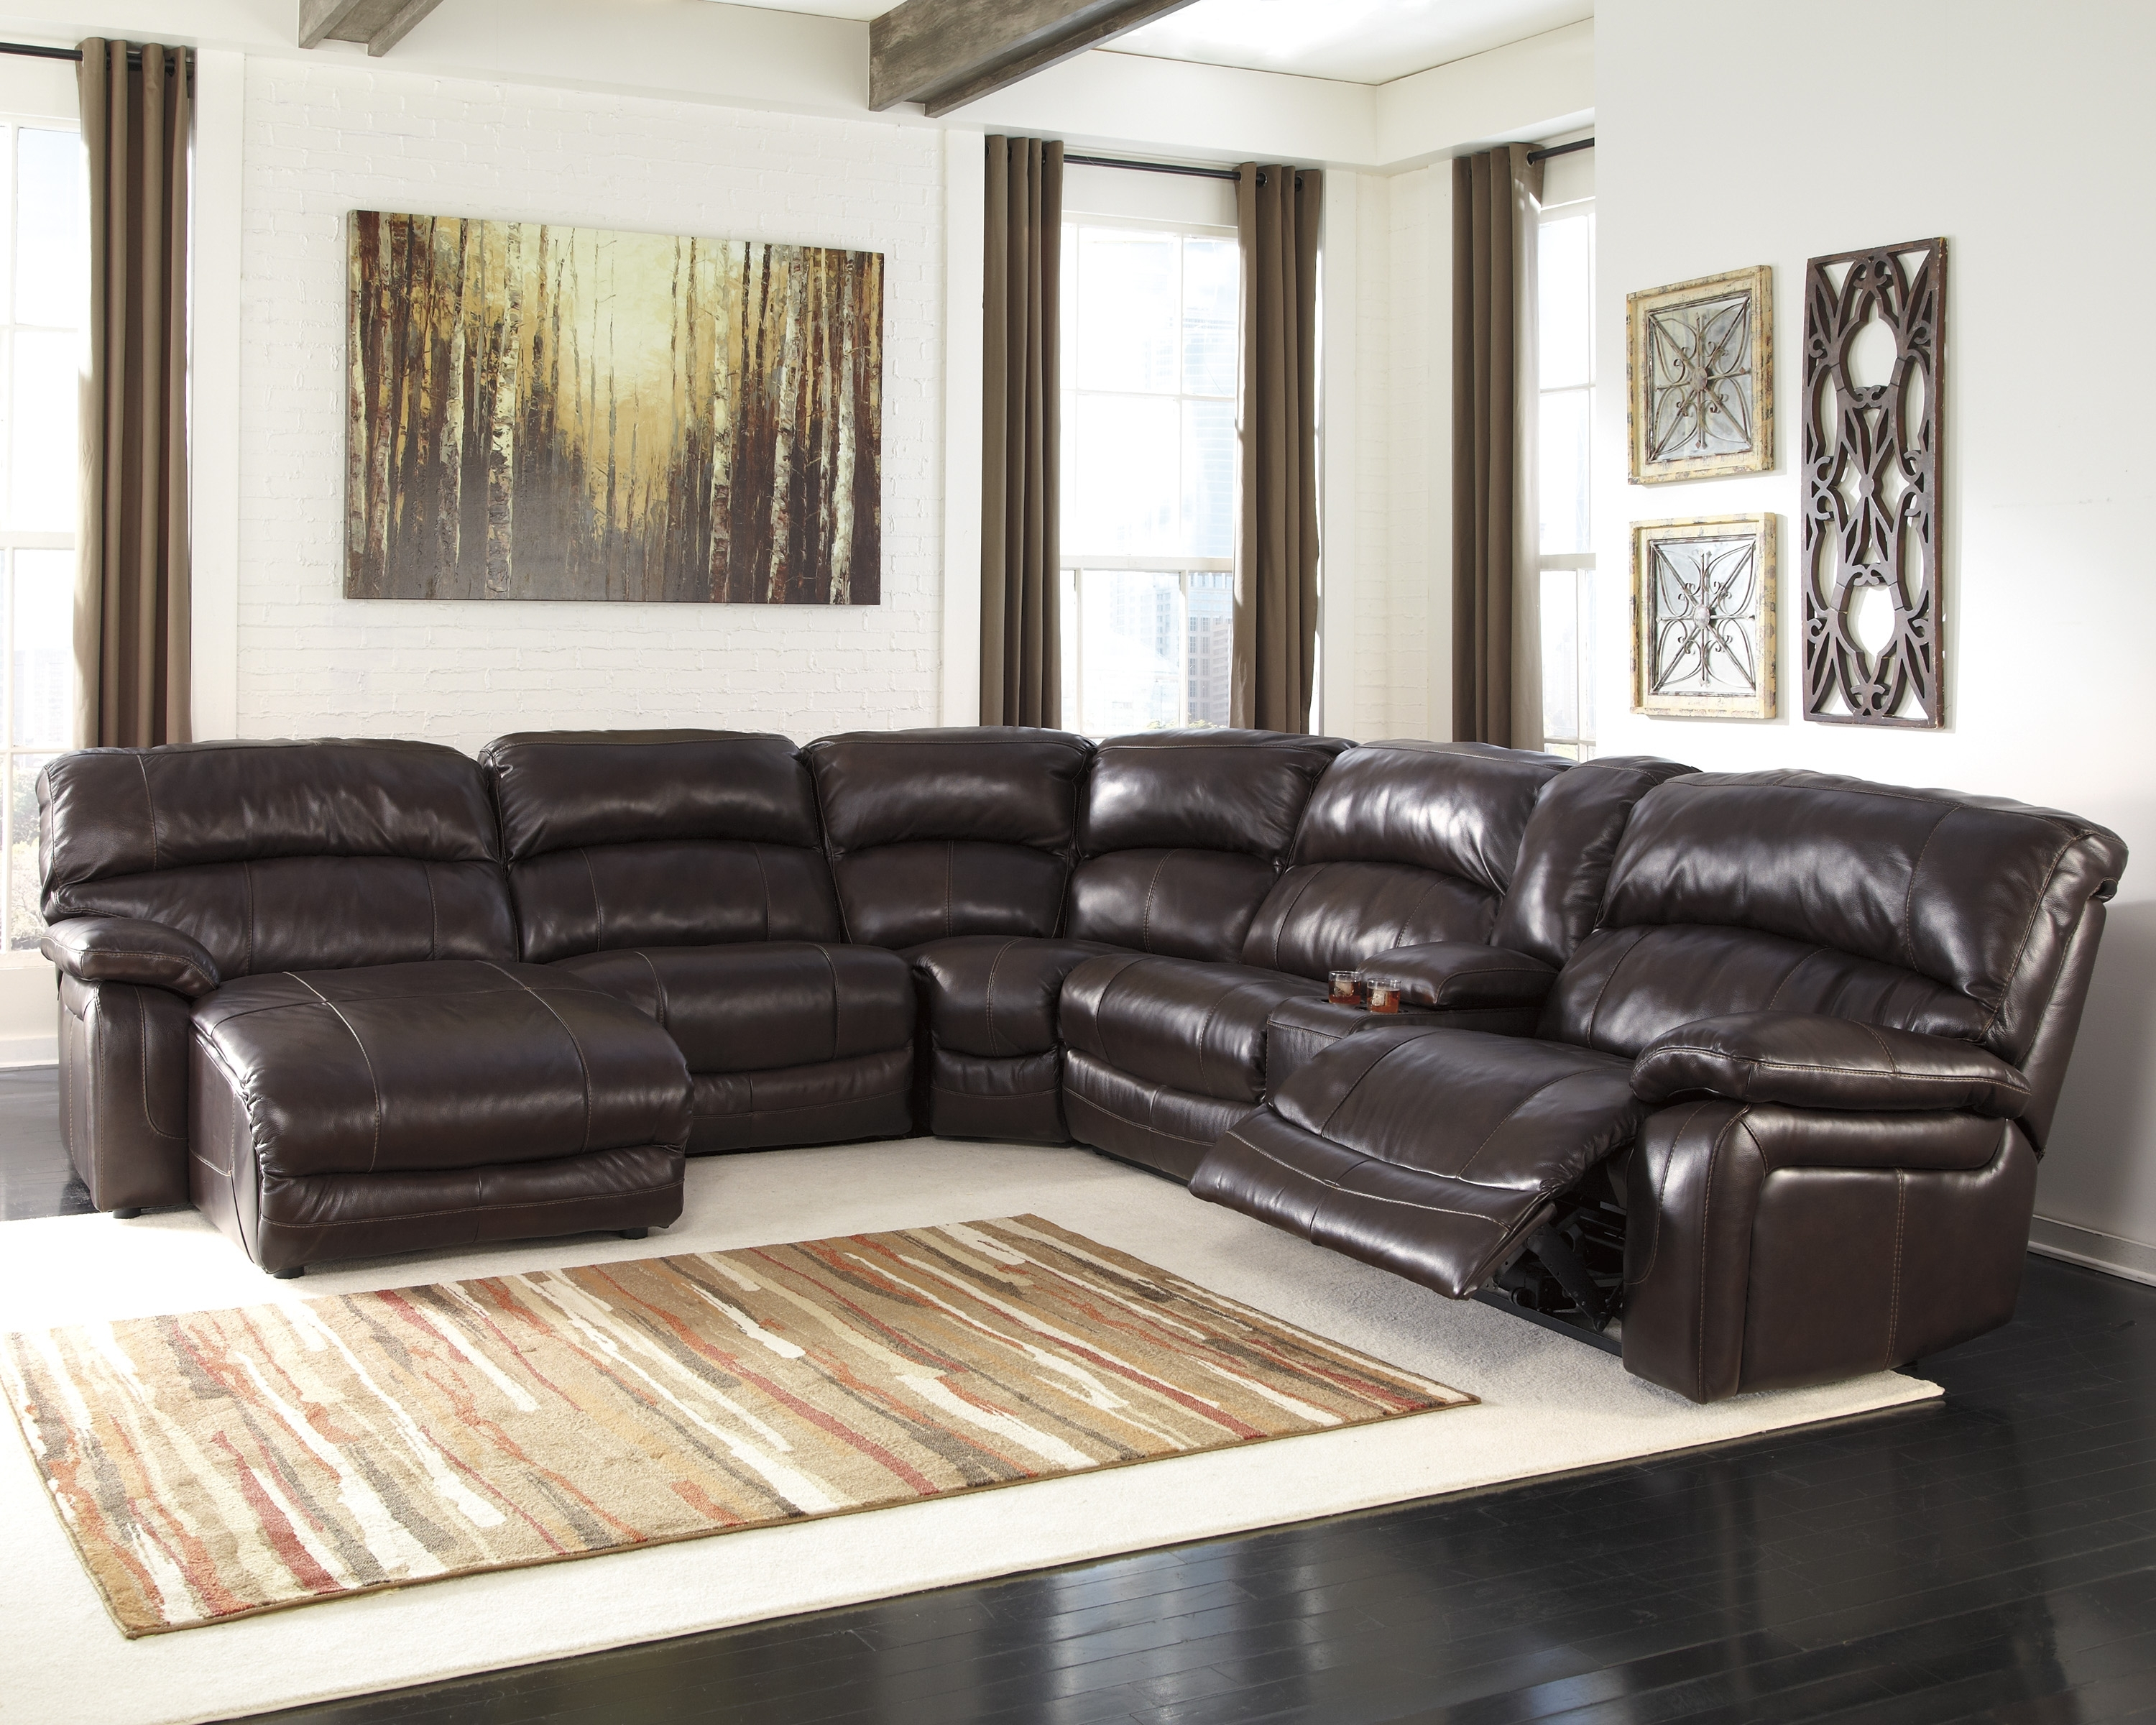 Popular Extraordinary Large Leather Sectional Sofas 24 For Ashley Within Huntsville Al Sectional Sofas (View 9 of 15)